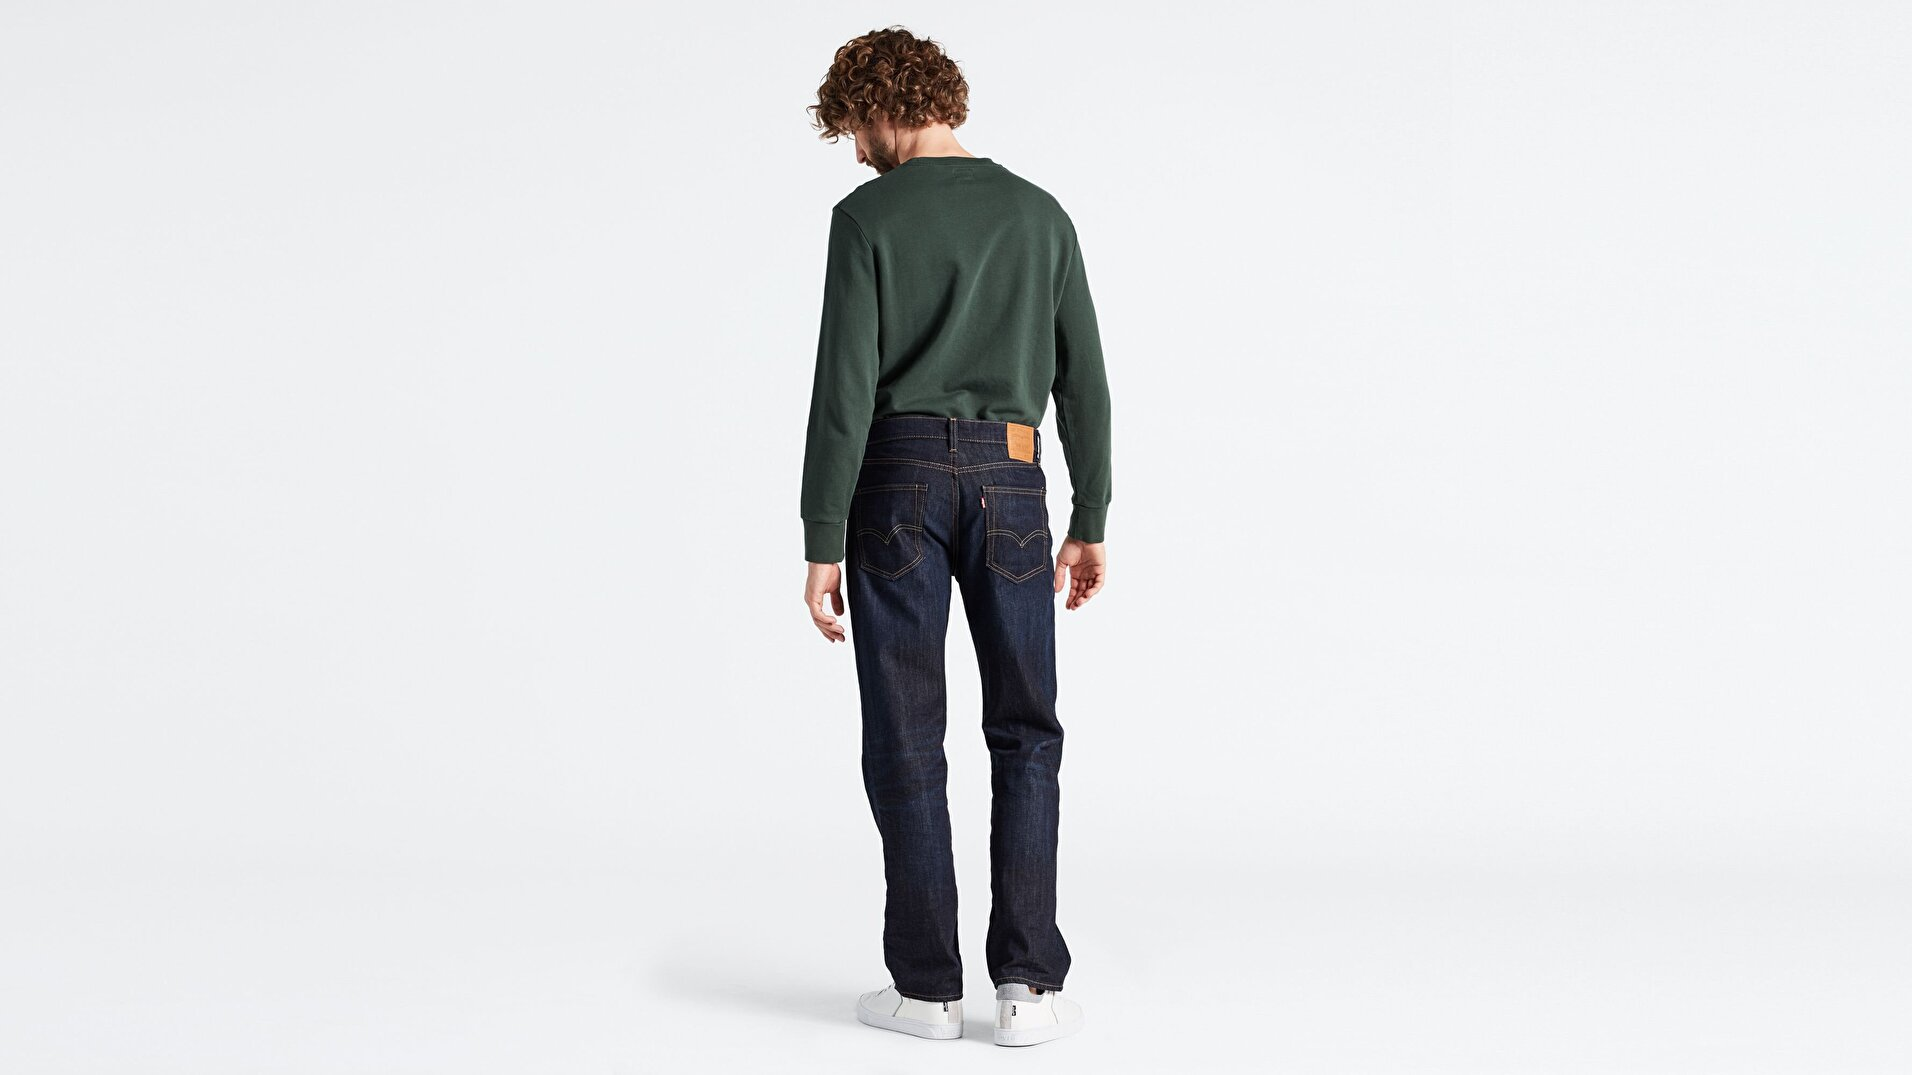 514™ Straight Fit Erkek Jean Pantolon-The Rich T2